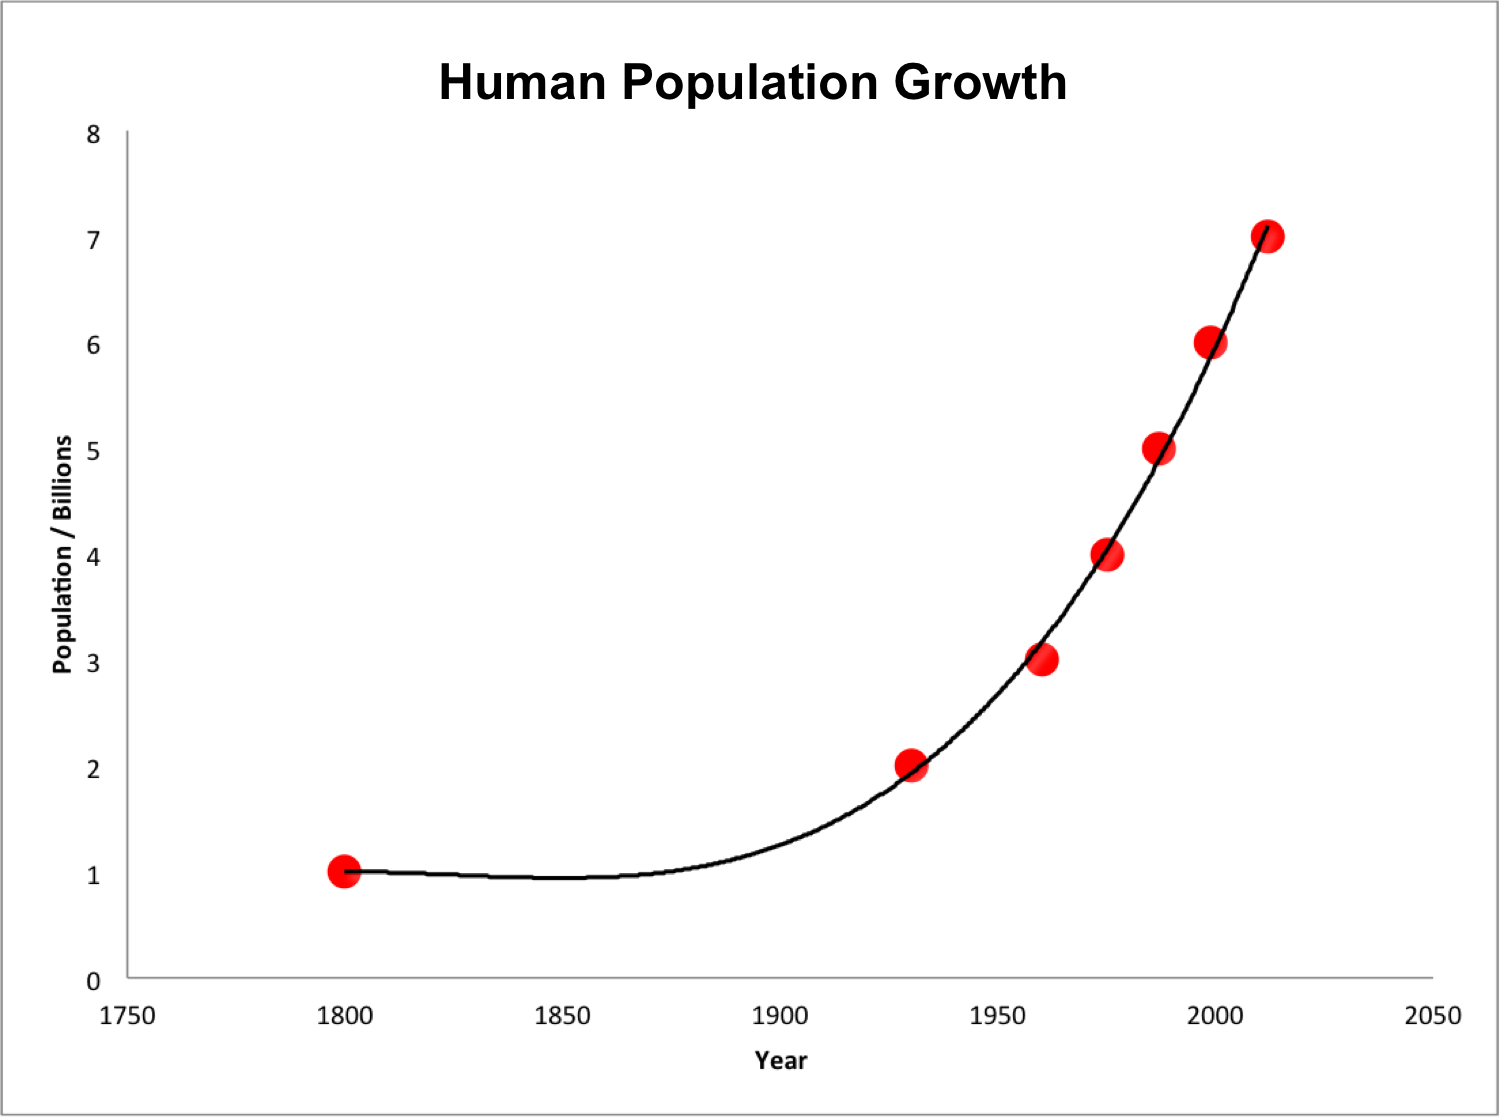 Human_population_growth_from_1800_to_2000